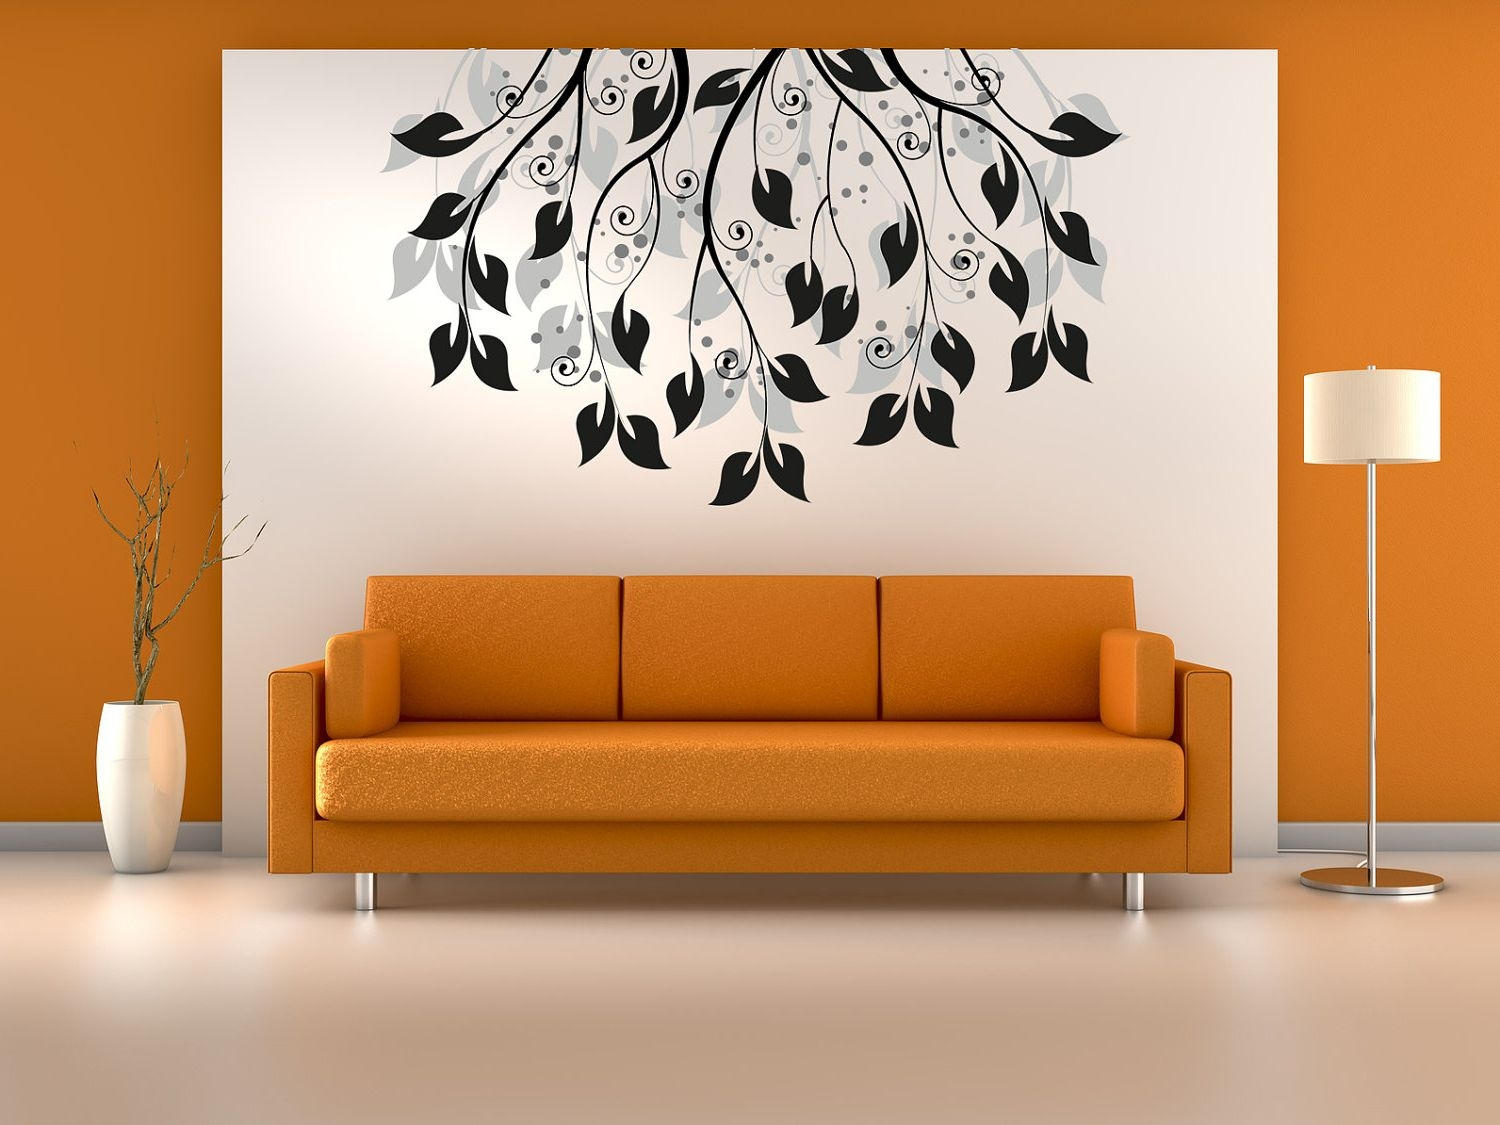 Beauty Design Of The Living Room Inspiration With Orange Fabri Sofa Ideas Added With White And Orange Wall Ideas